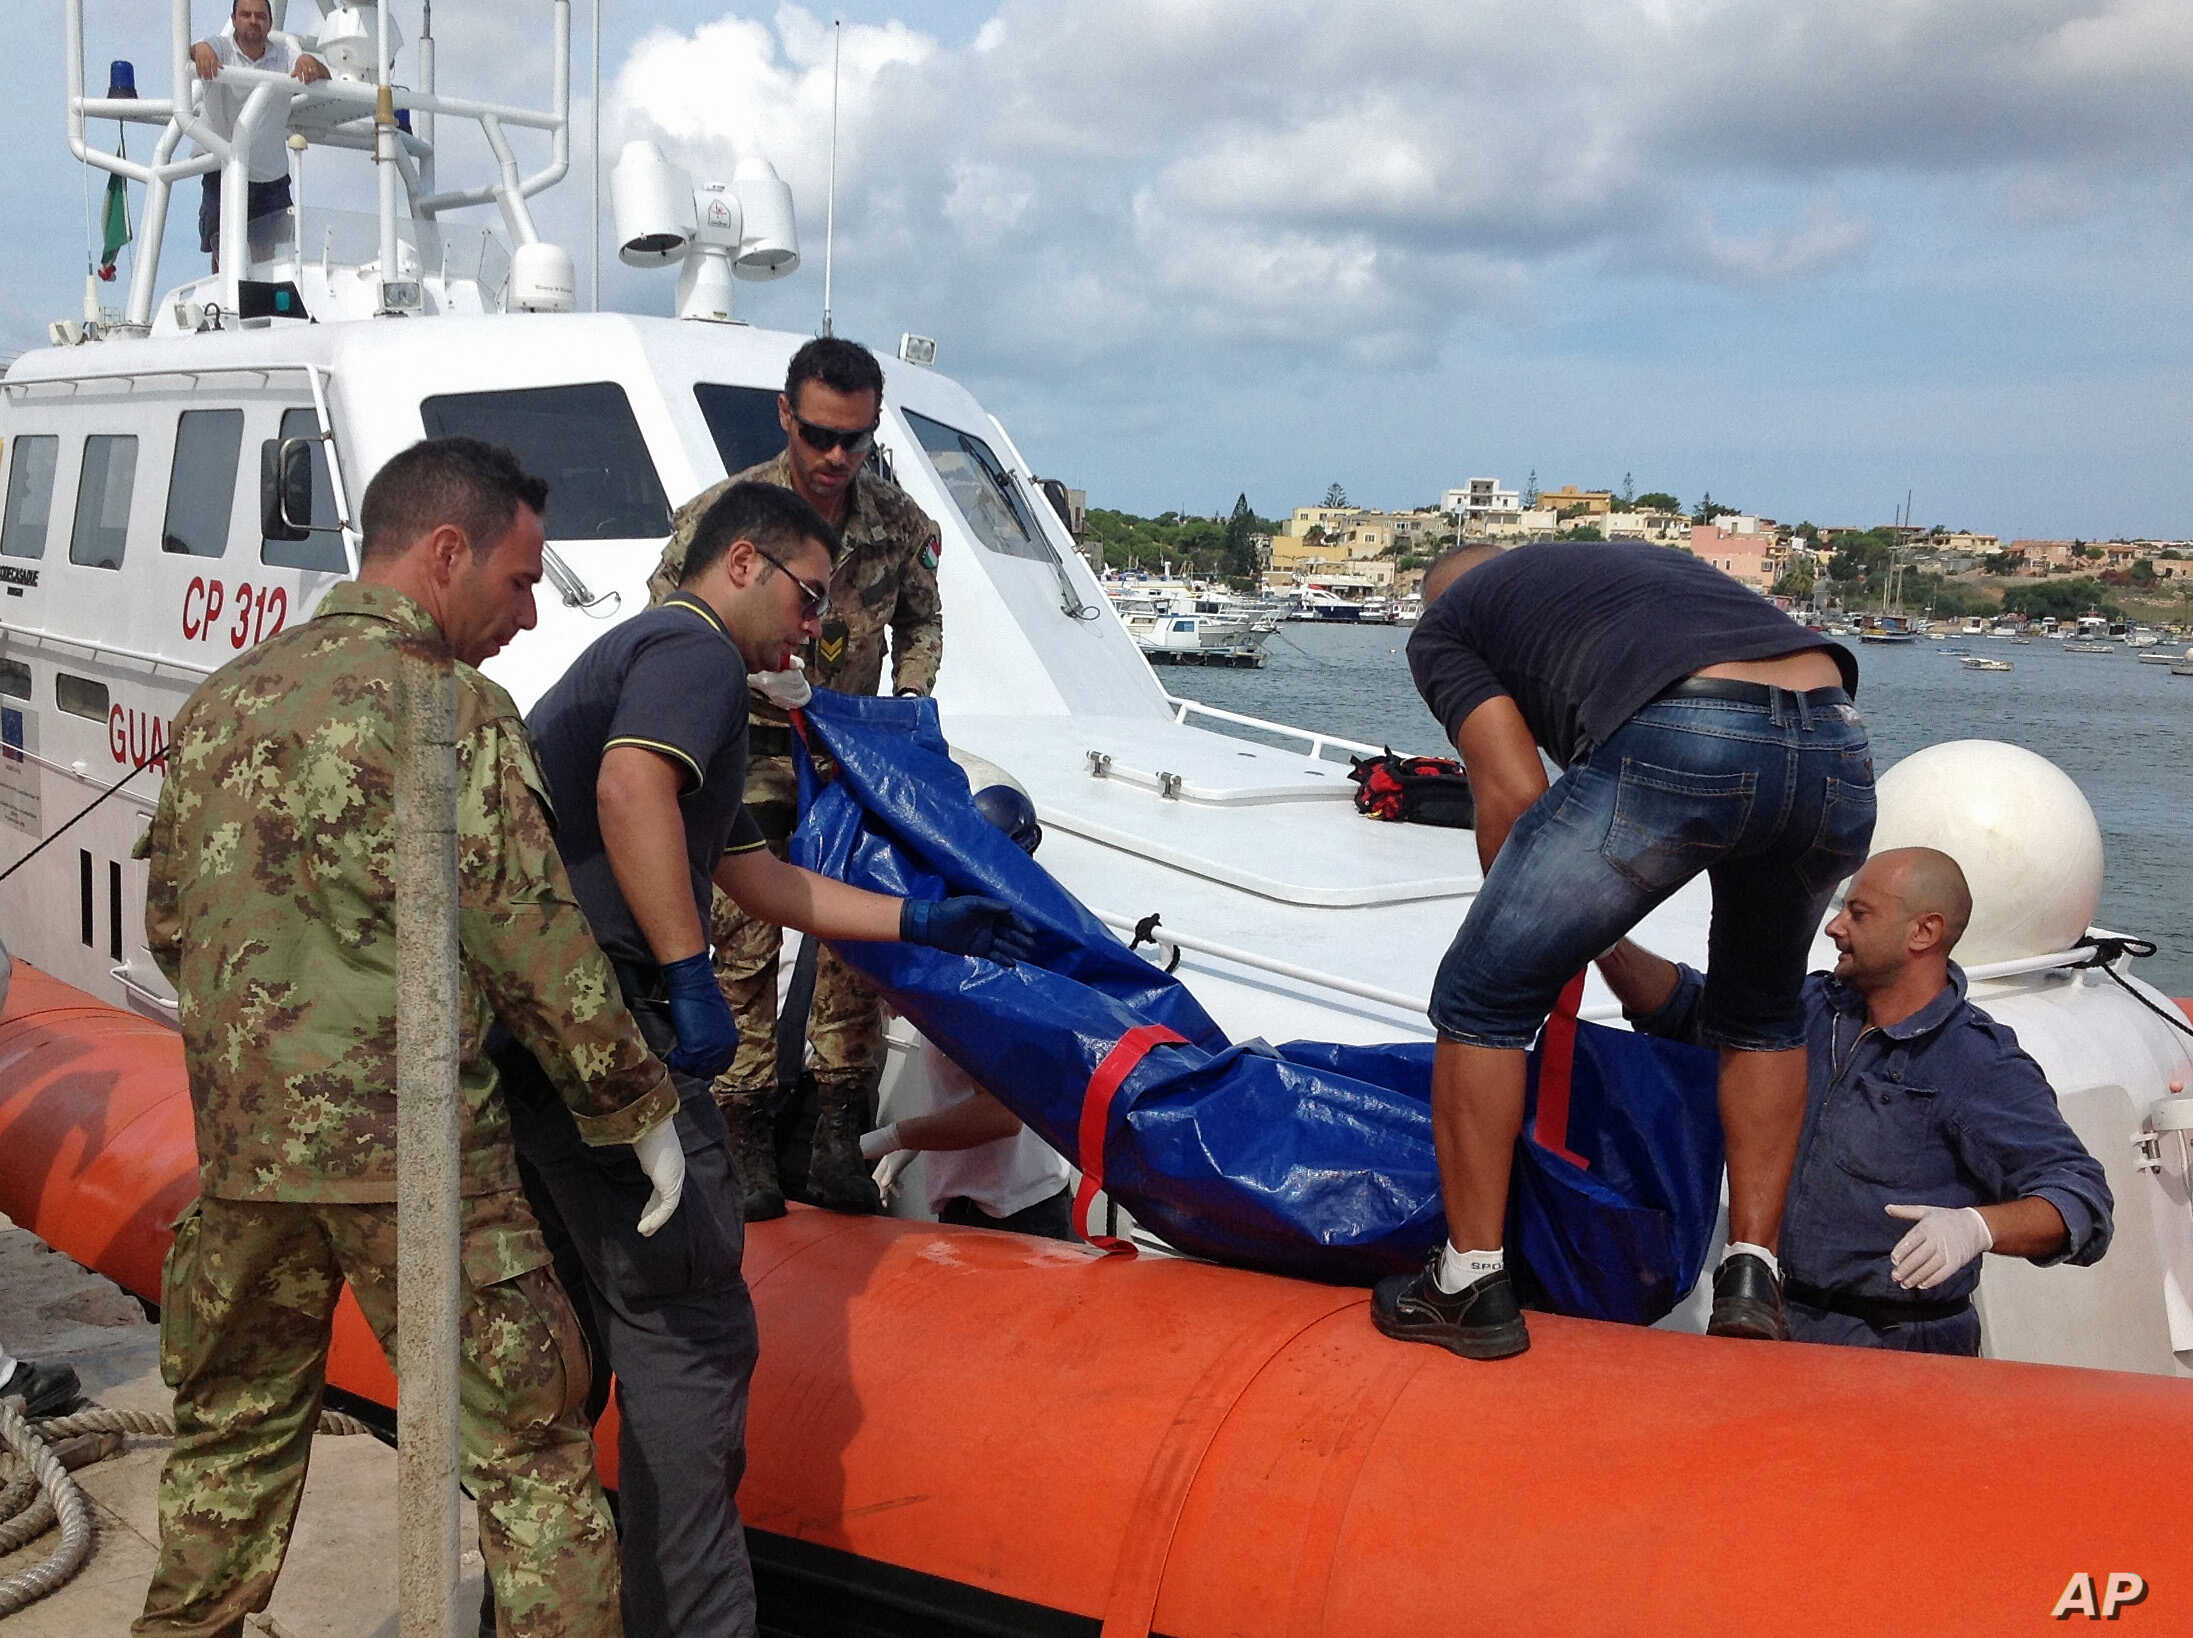 The body of a drowned migrant is being unloaded from a Coast Guard boat in the port of Lampedusa, Italy, Oct. 3, 2013.